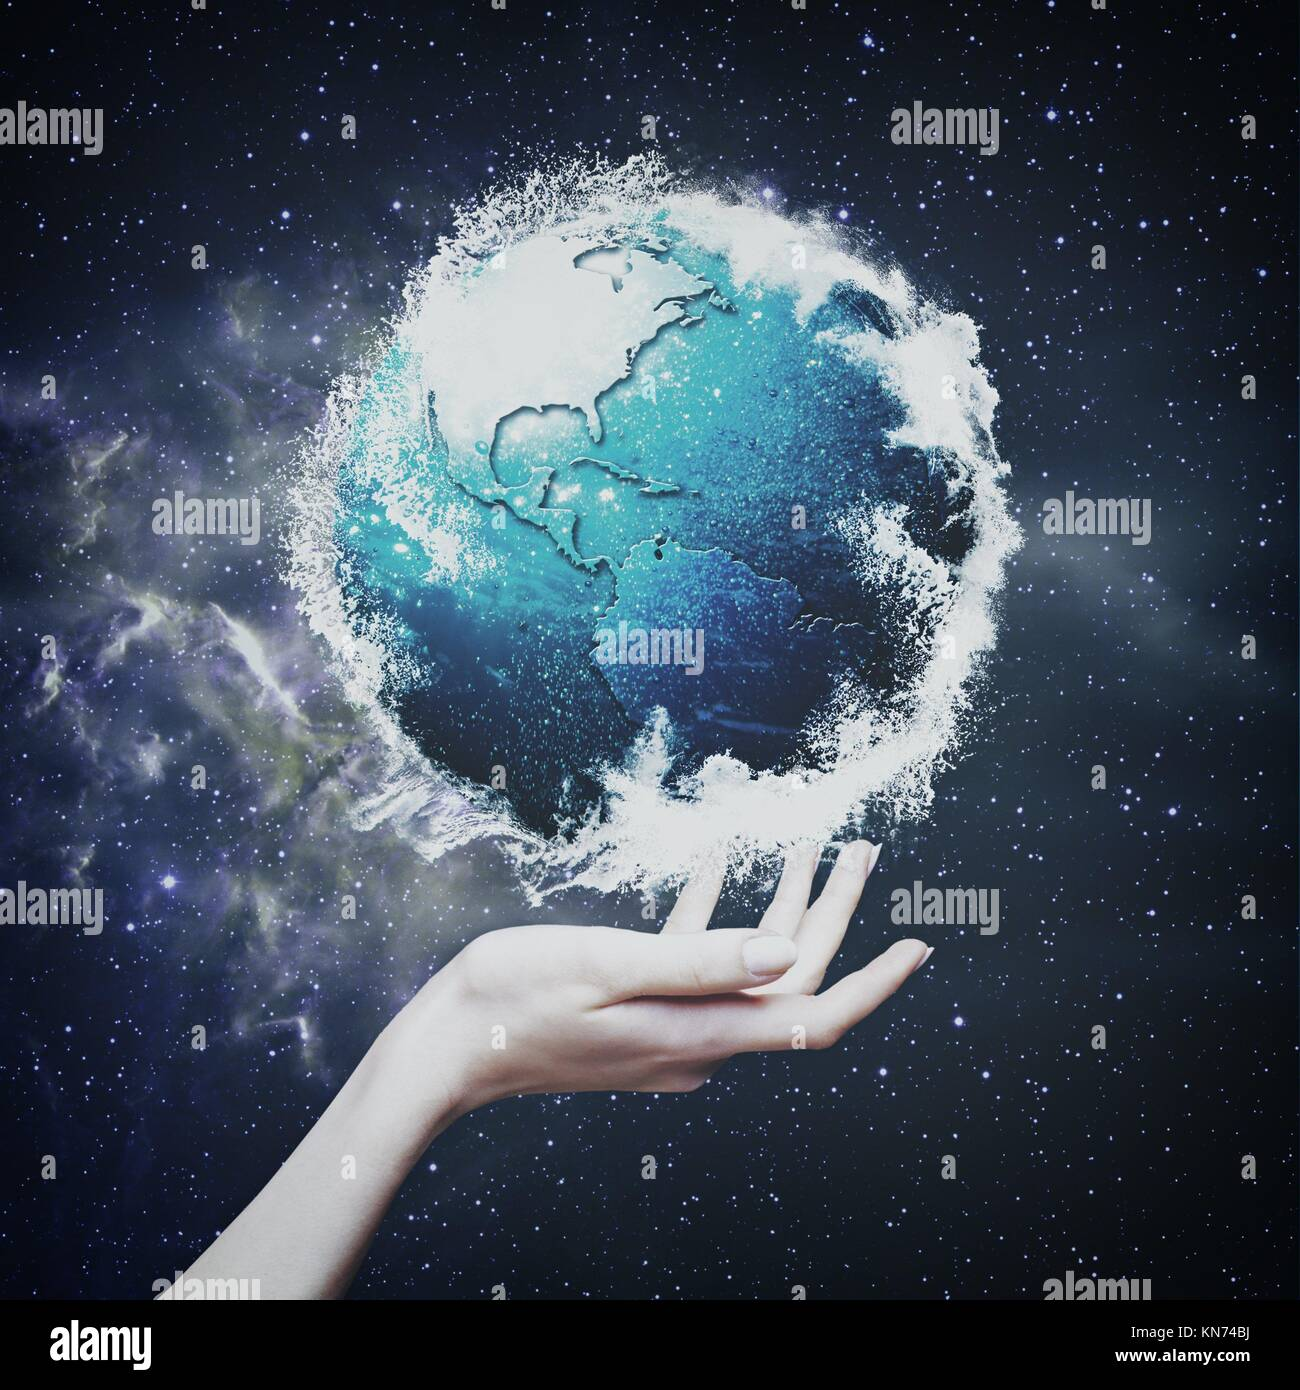 Earth globe against starry backgrounds, environmental concept. - Stock Image